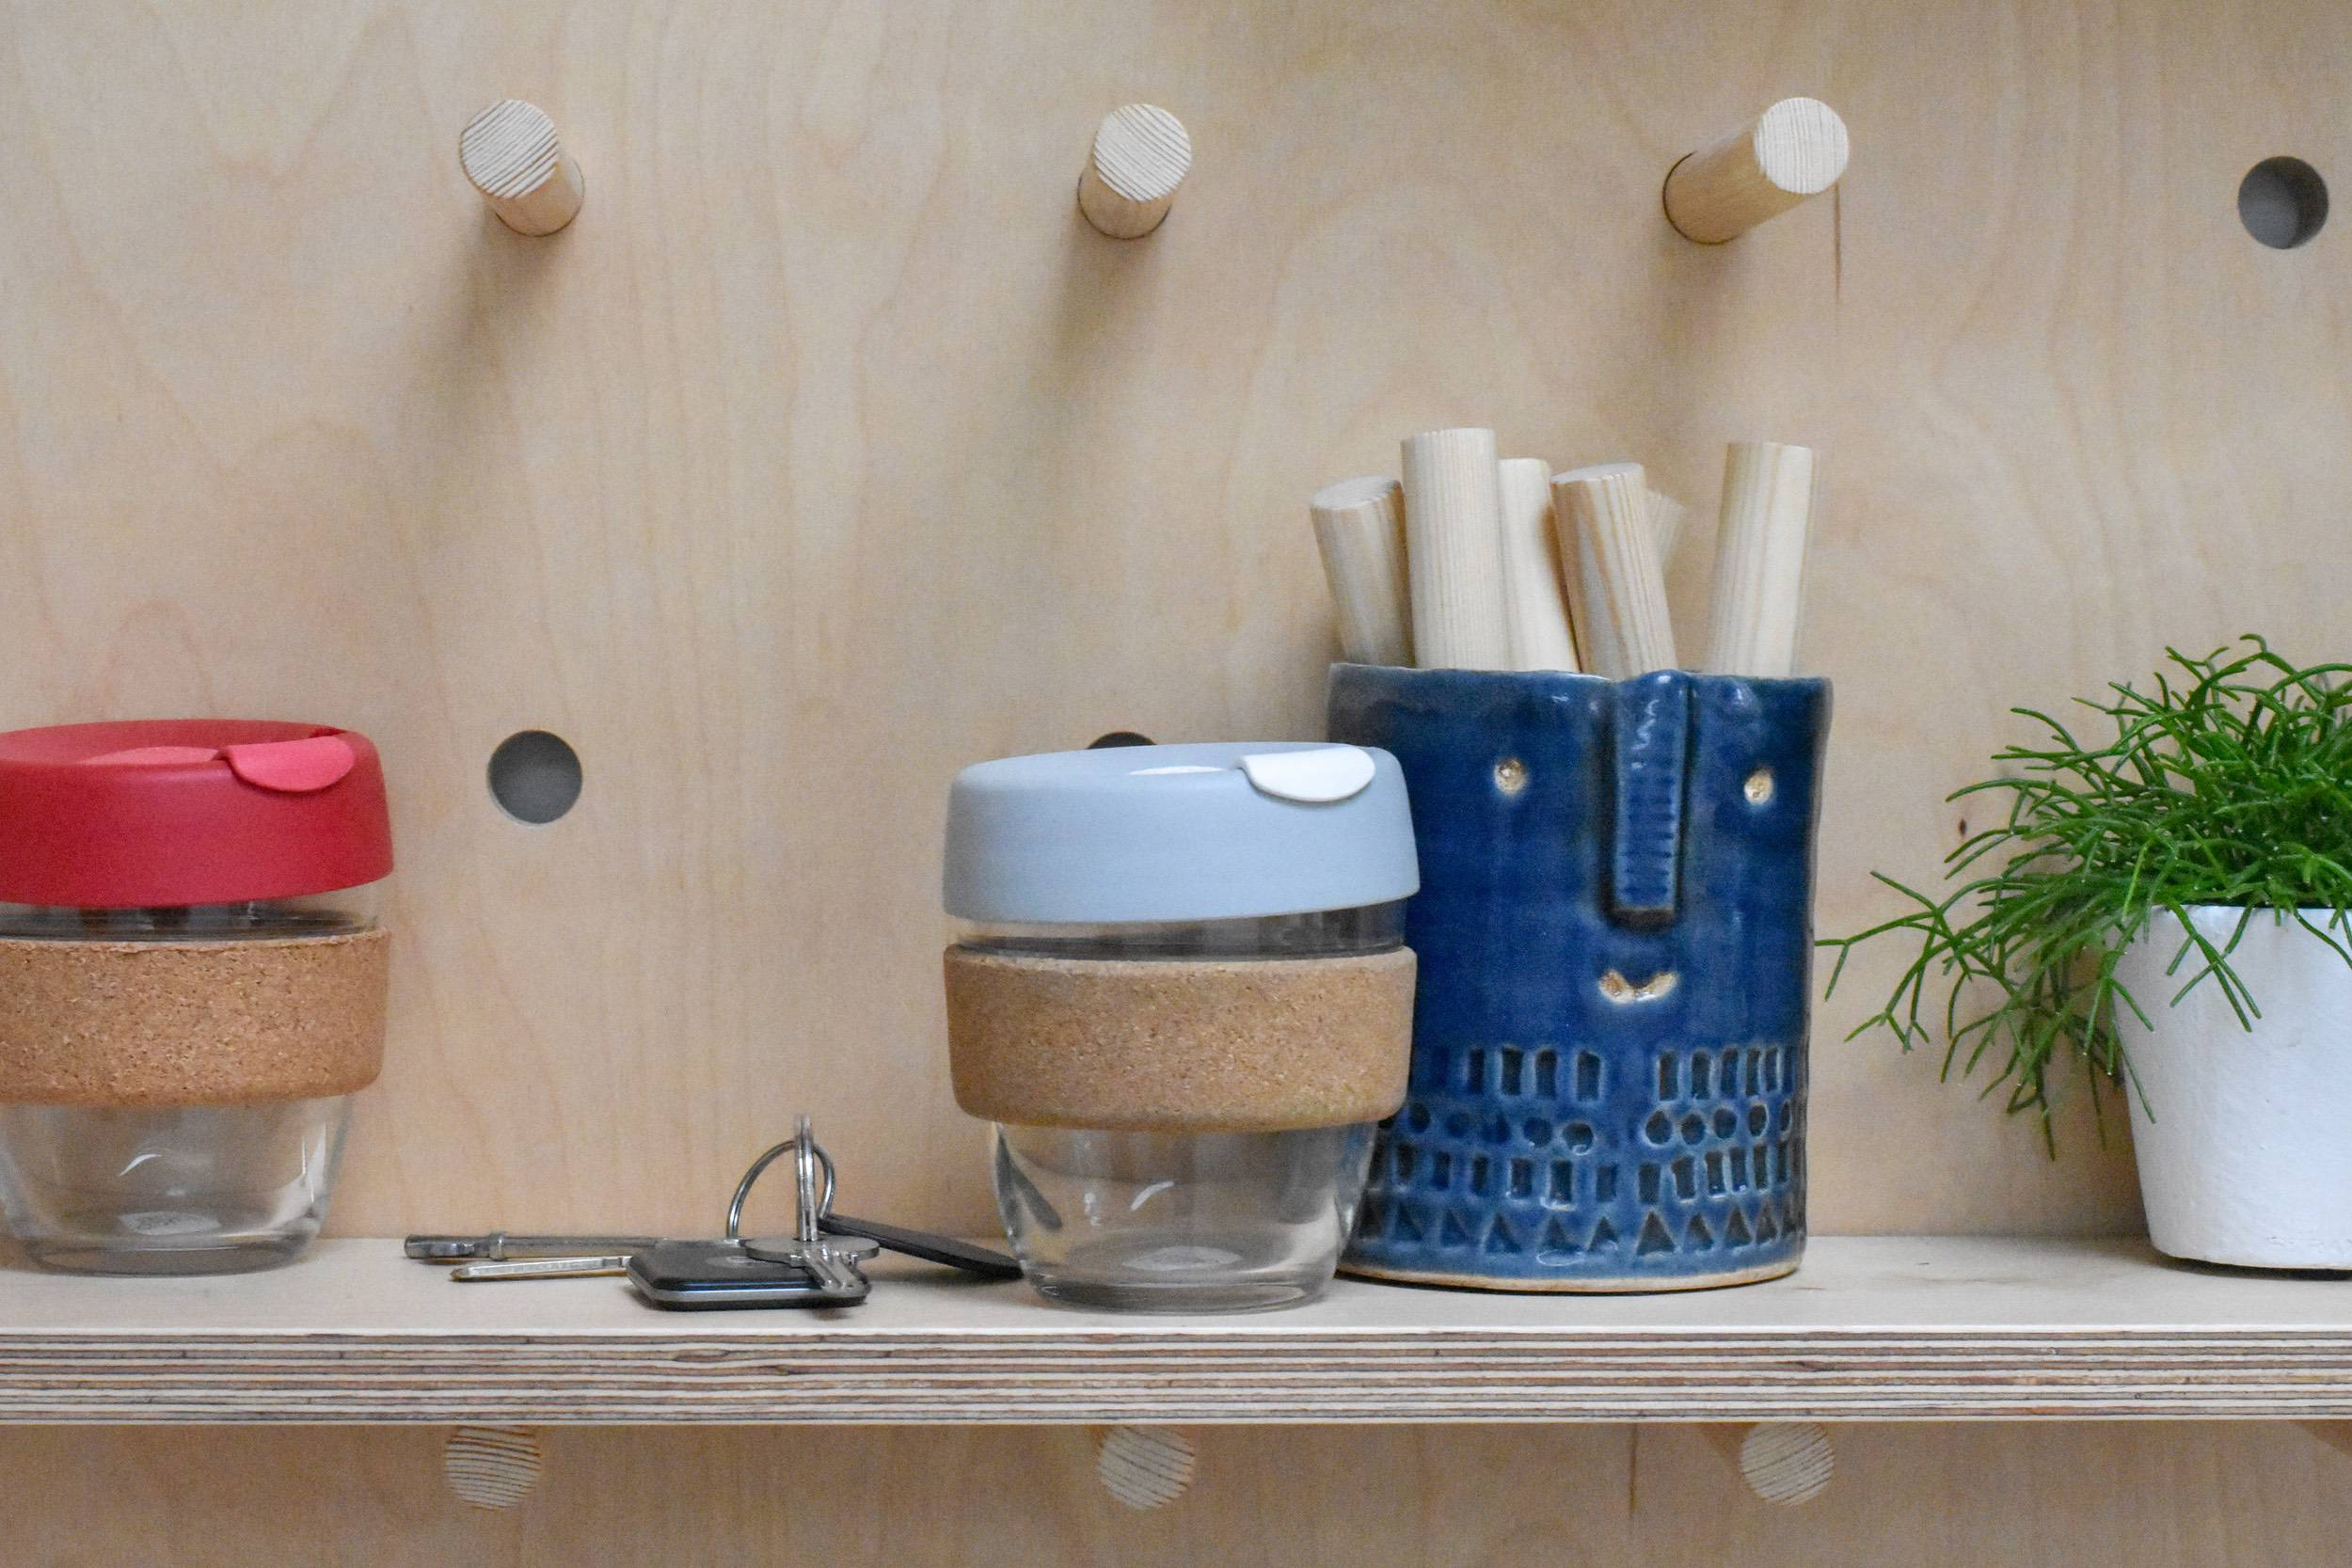 LIVING etc. - Plastic-free ideas for all kinds of life stuff